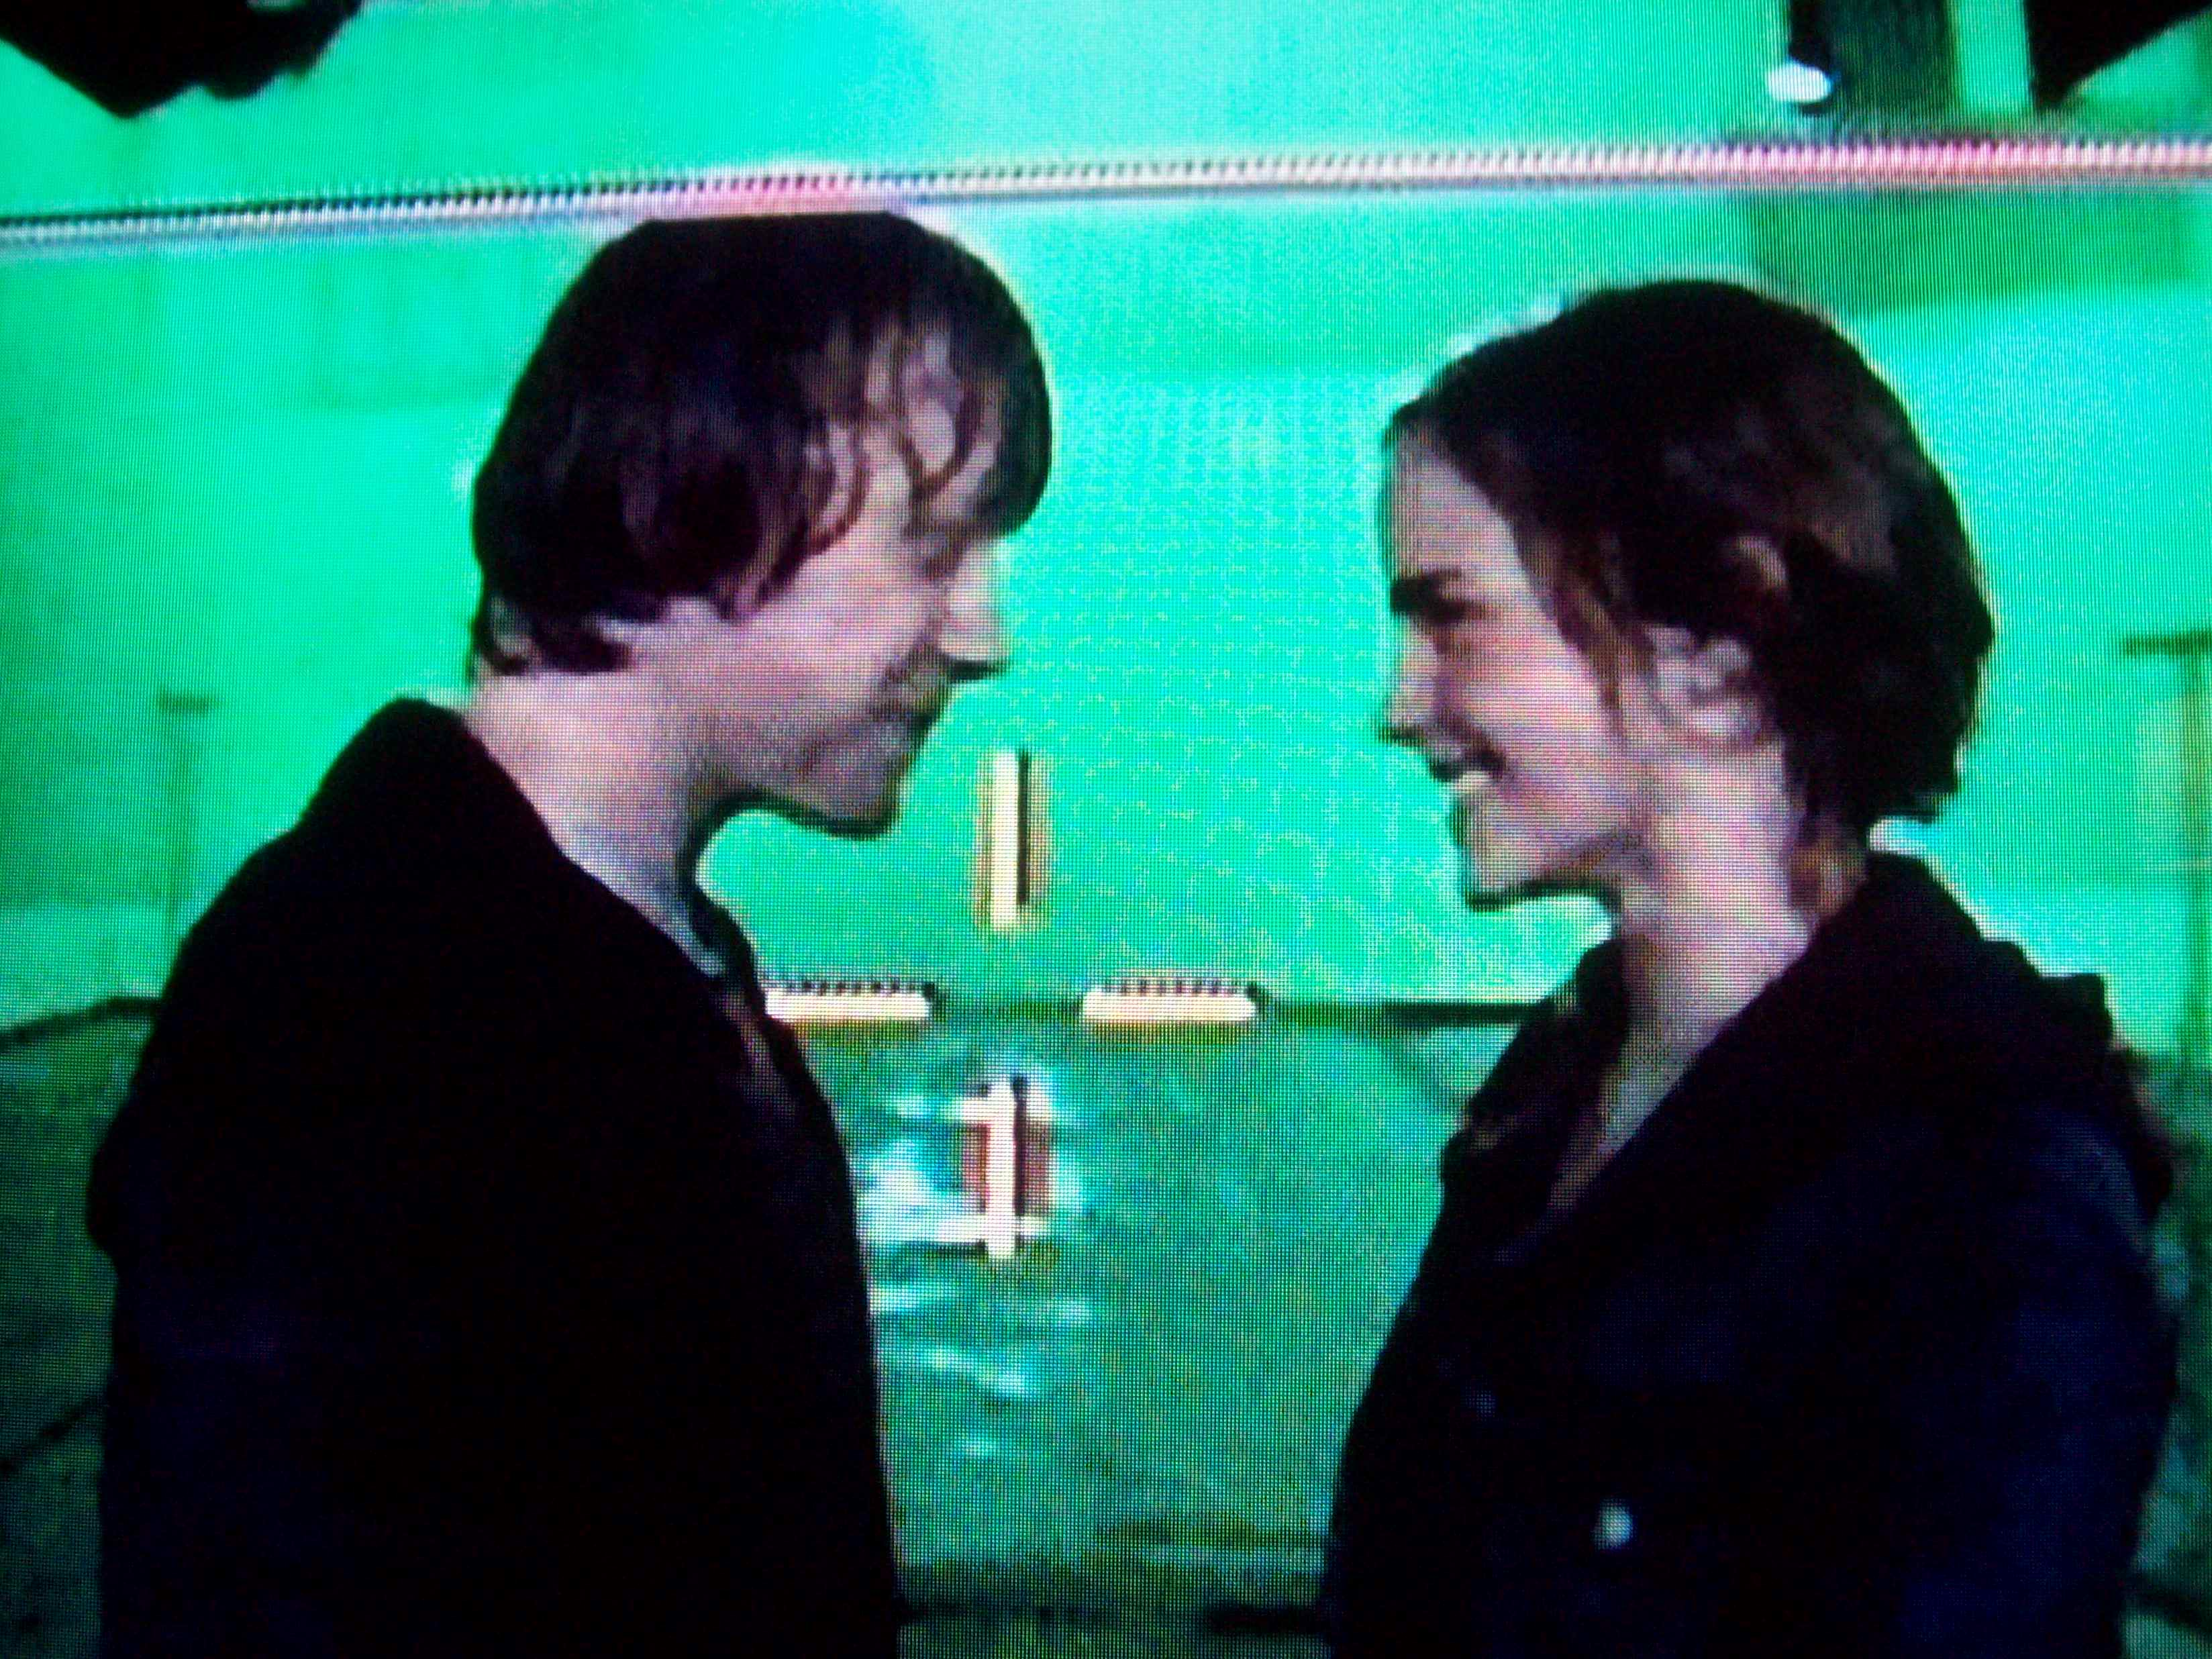 Harry potter 7 part 1 hermione and harry kiss.